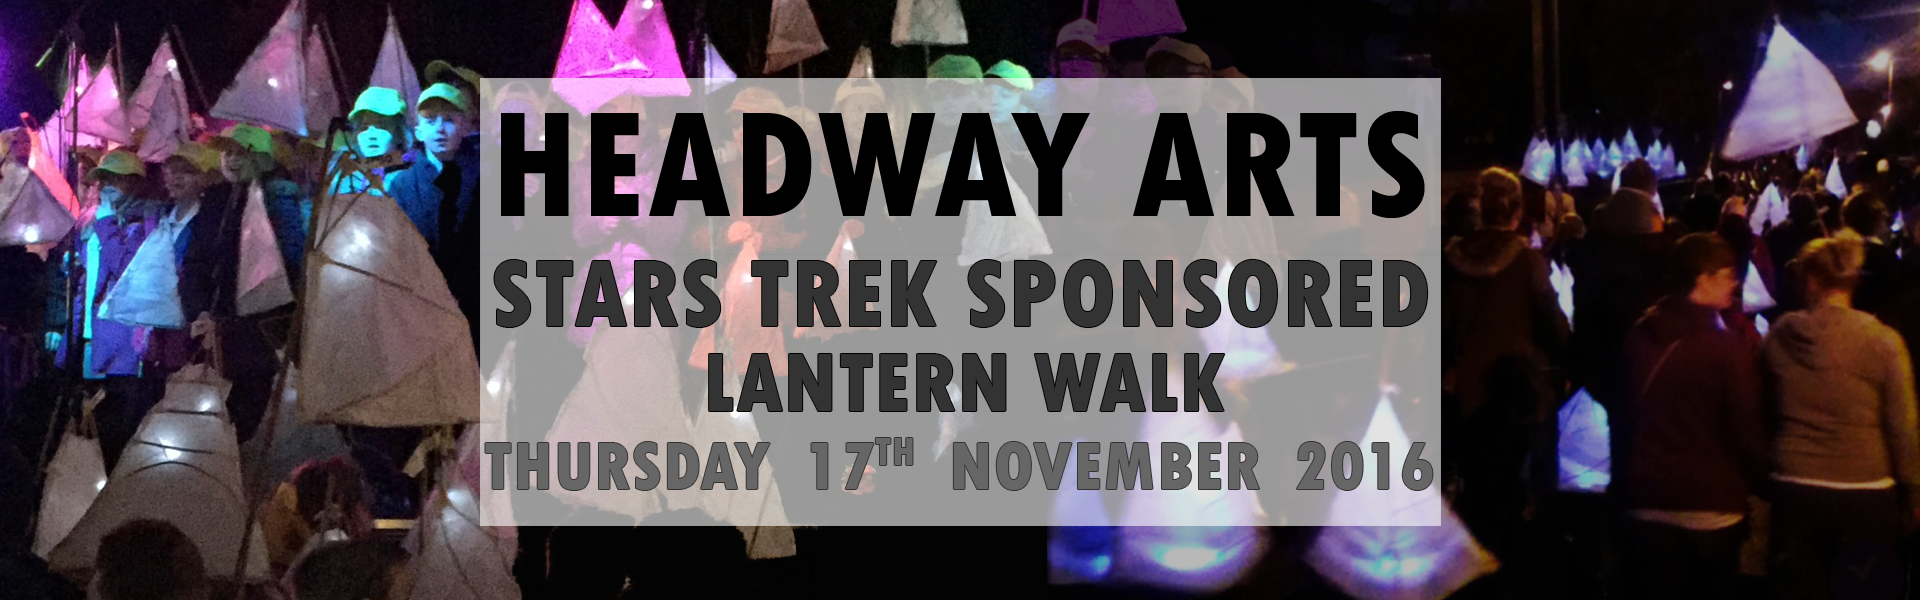 Headway Arts Stars Trek Sponsored Lantern Walk